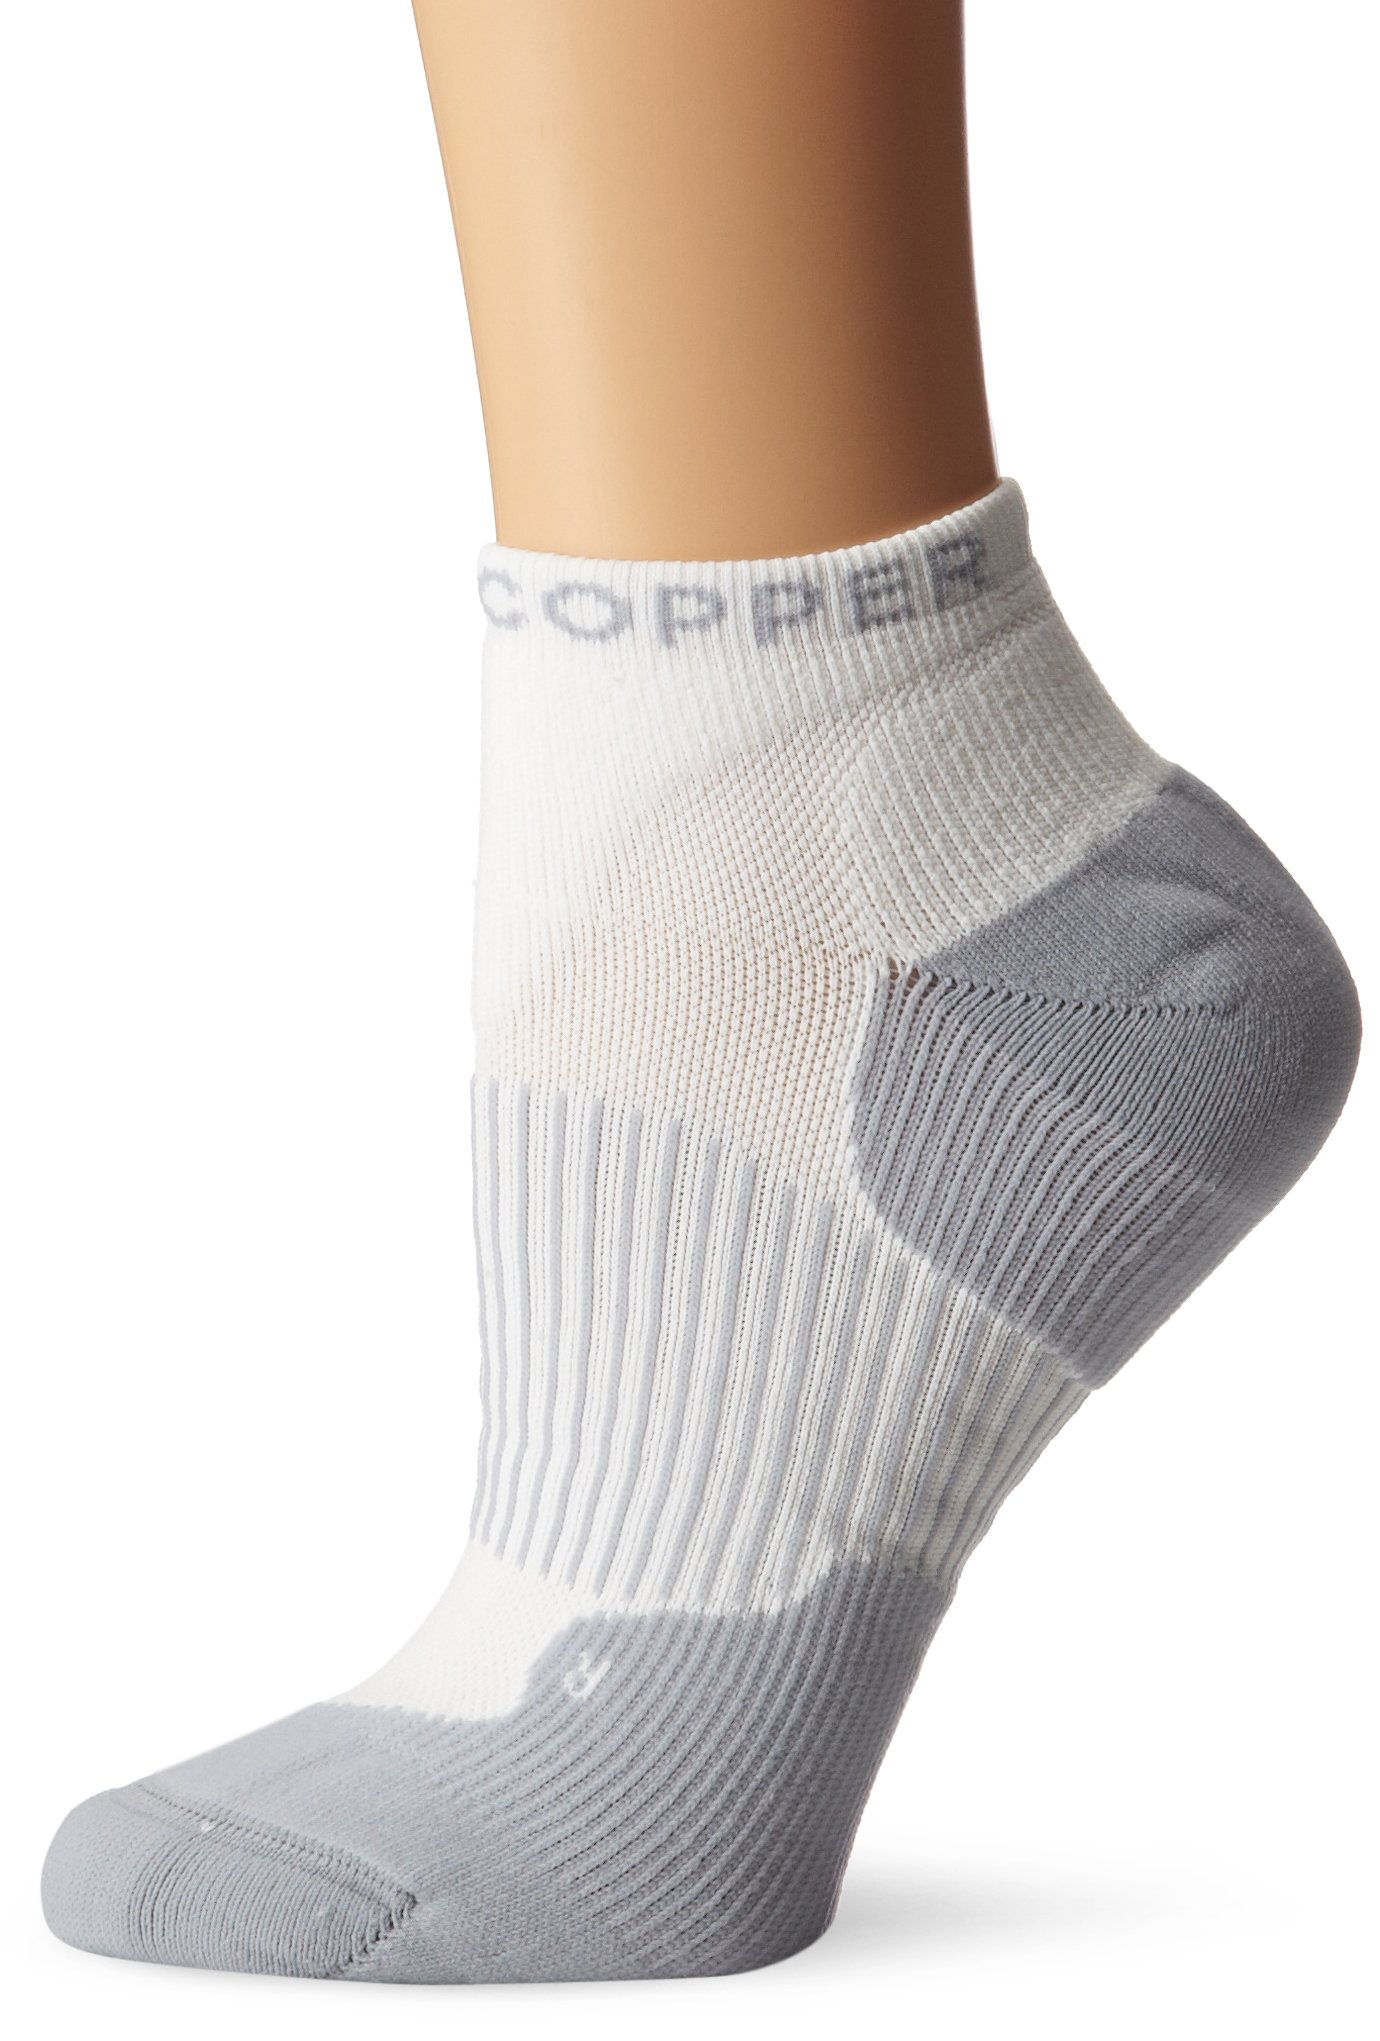 Tommie Copper Women's Performance Compression Ankle Socks, White, 13-15.5